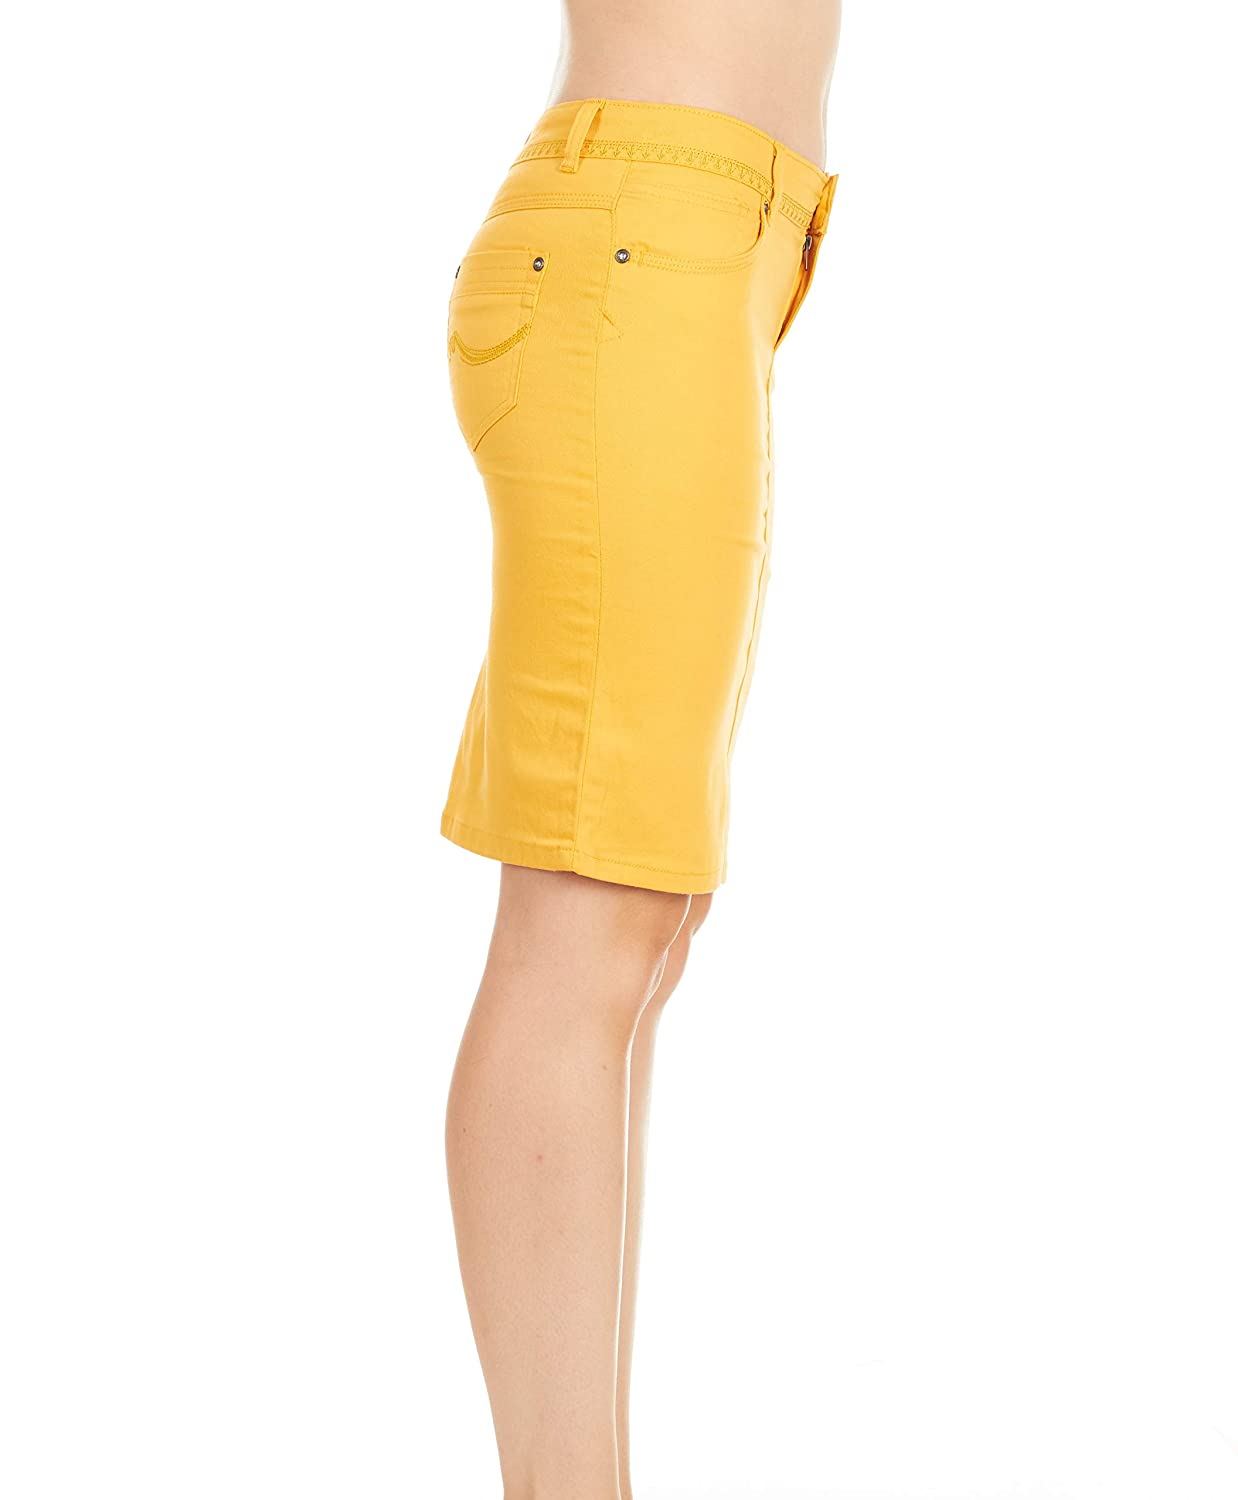 Fgr Girls 7-16 Soft Stertchy Cotton Color Pencil Skirt Plain Casual in 4 Colors